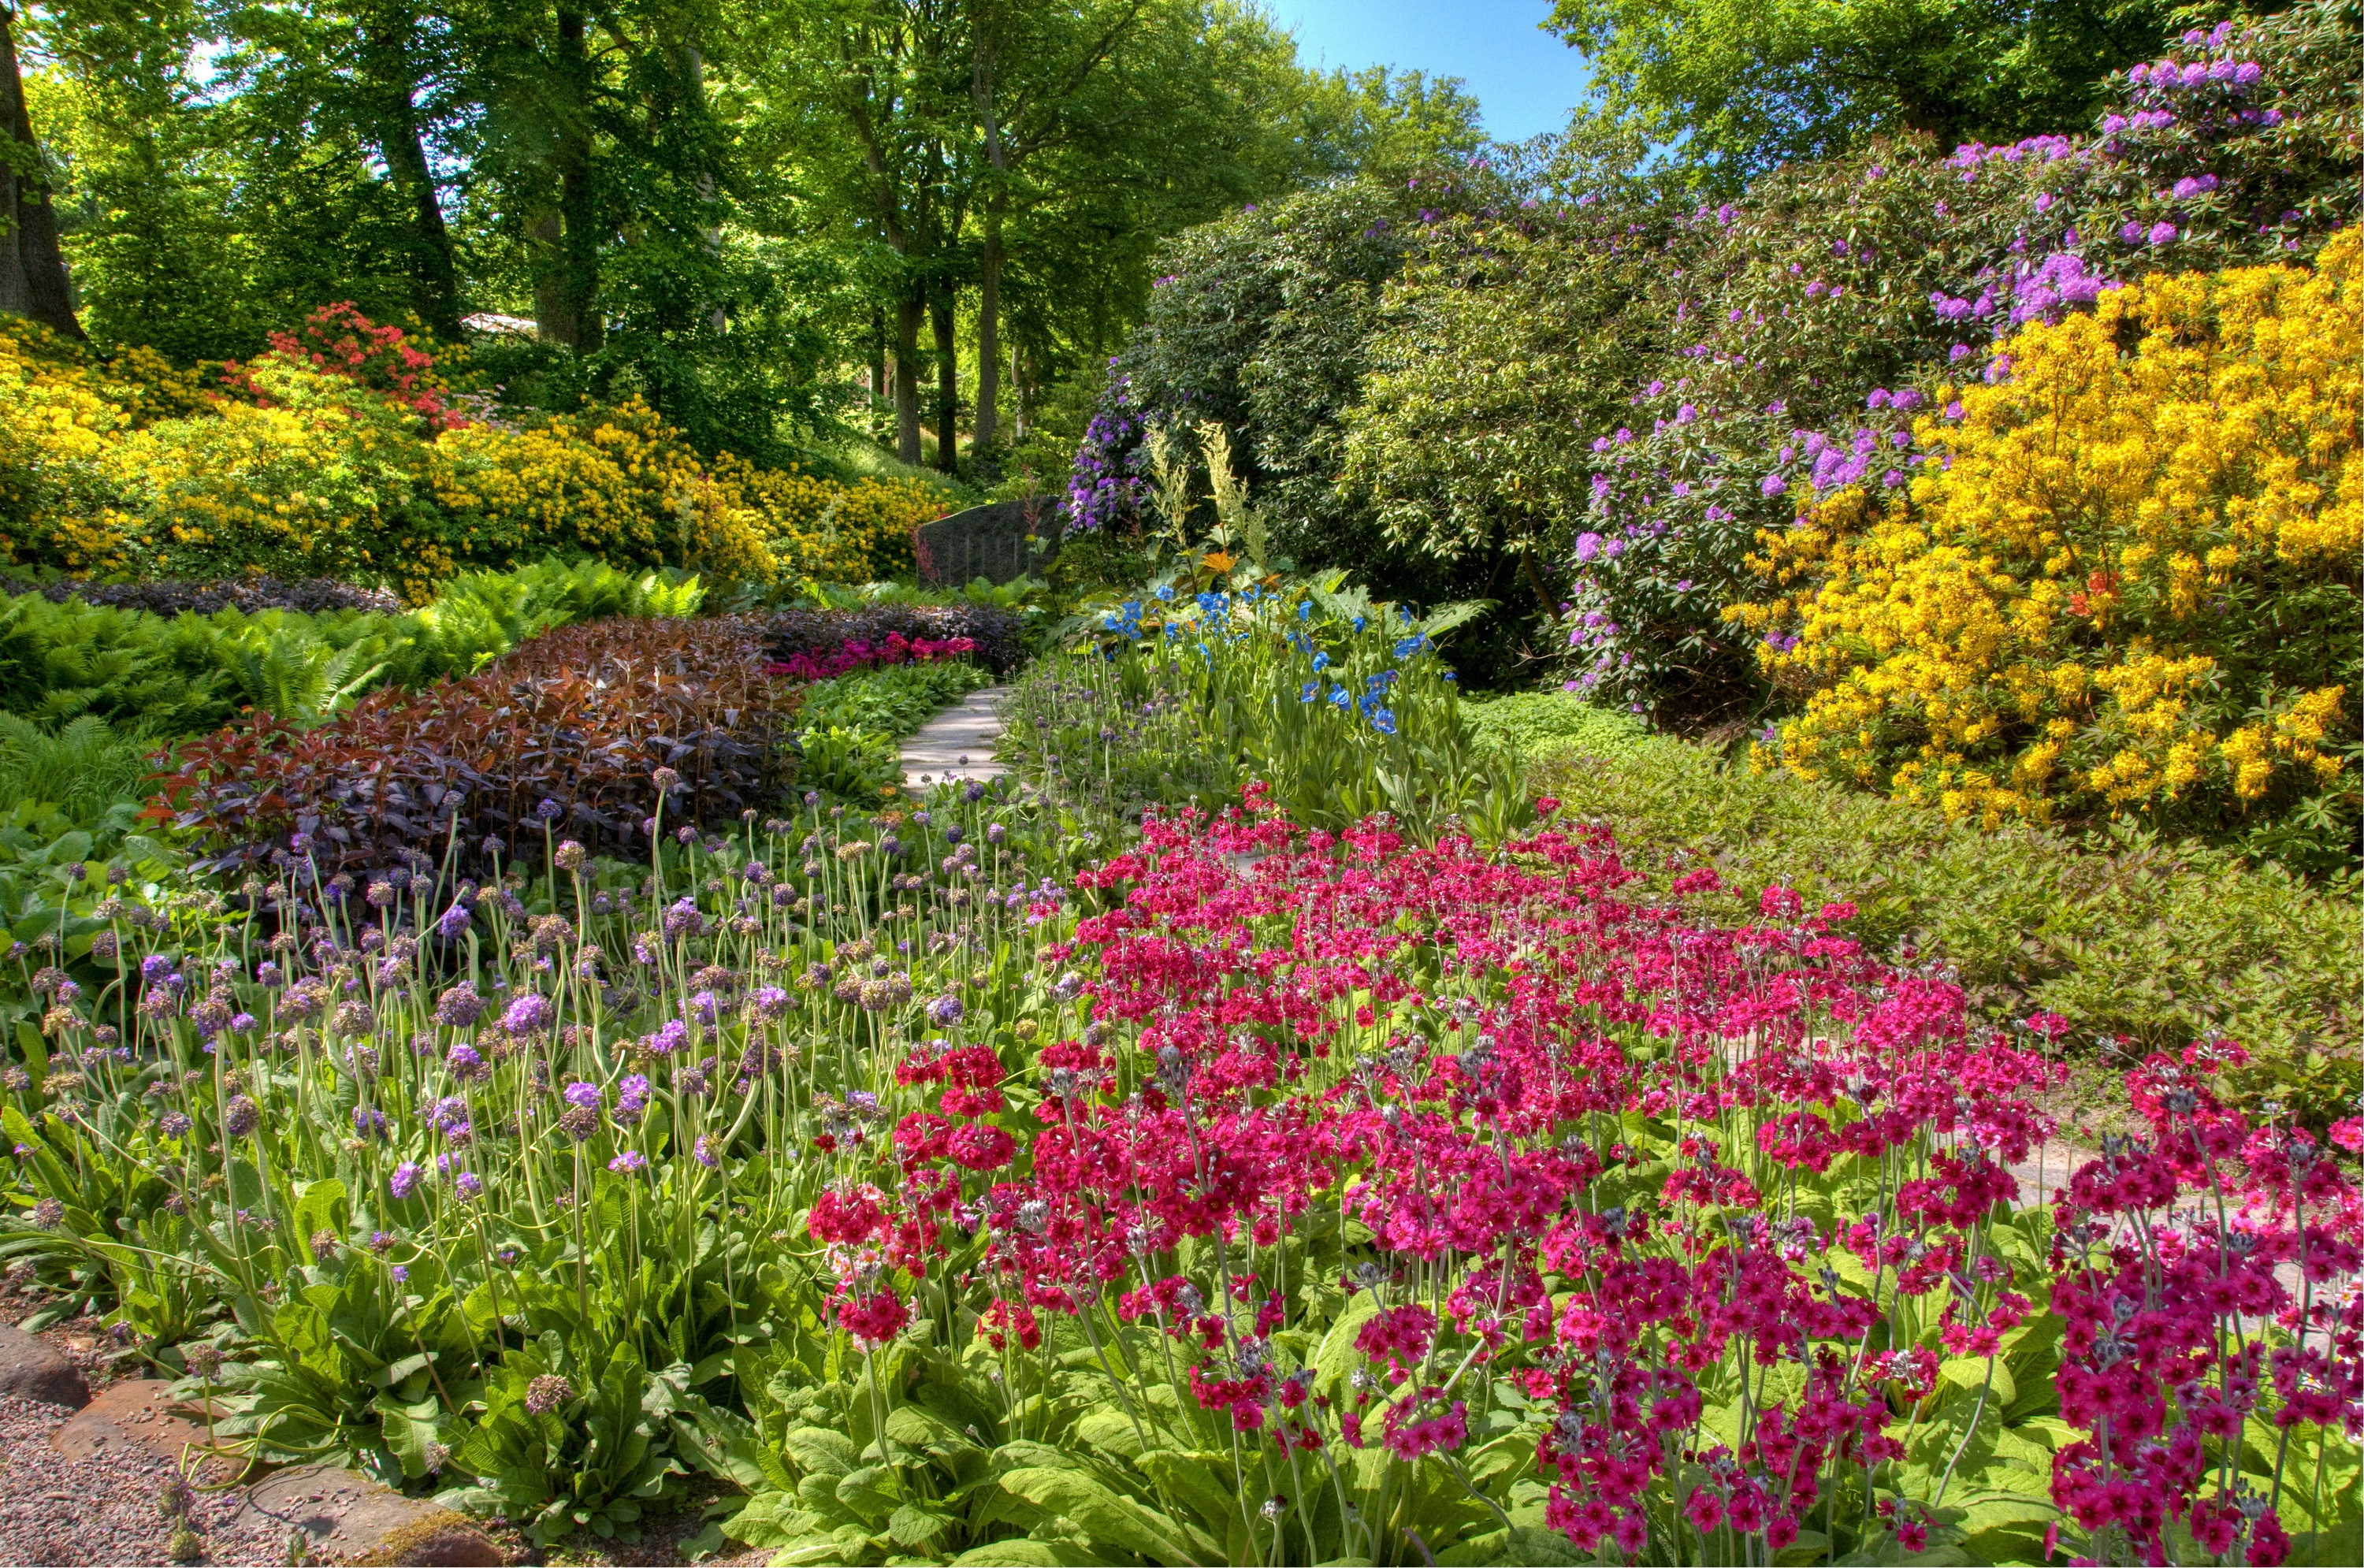 65894 download wallpaper Nature, Garden, Flower Beds, Abundance, Colors, Color, Assorted, Bush, Flowers screensavers and pictures for free